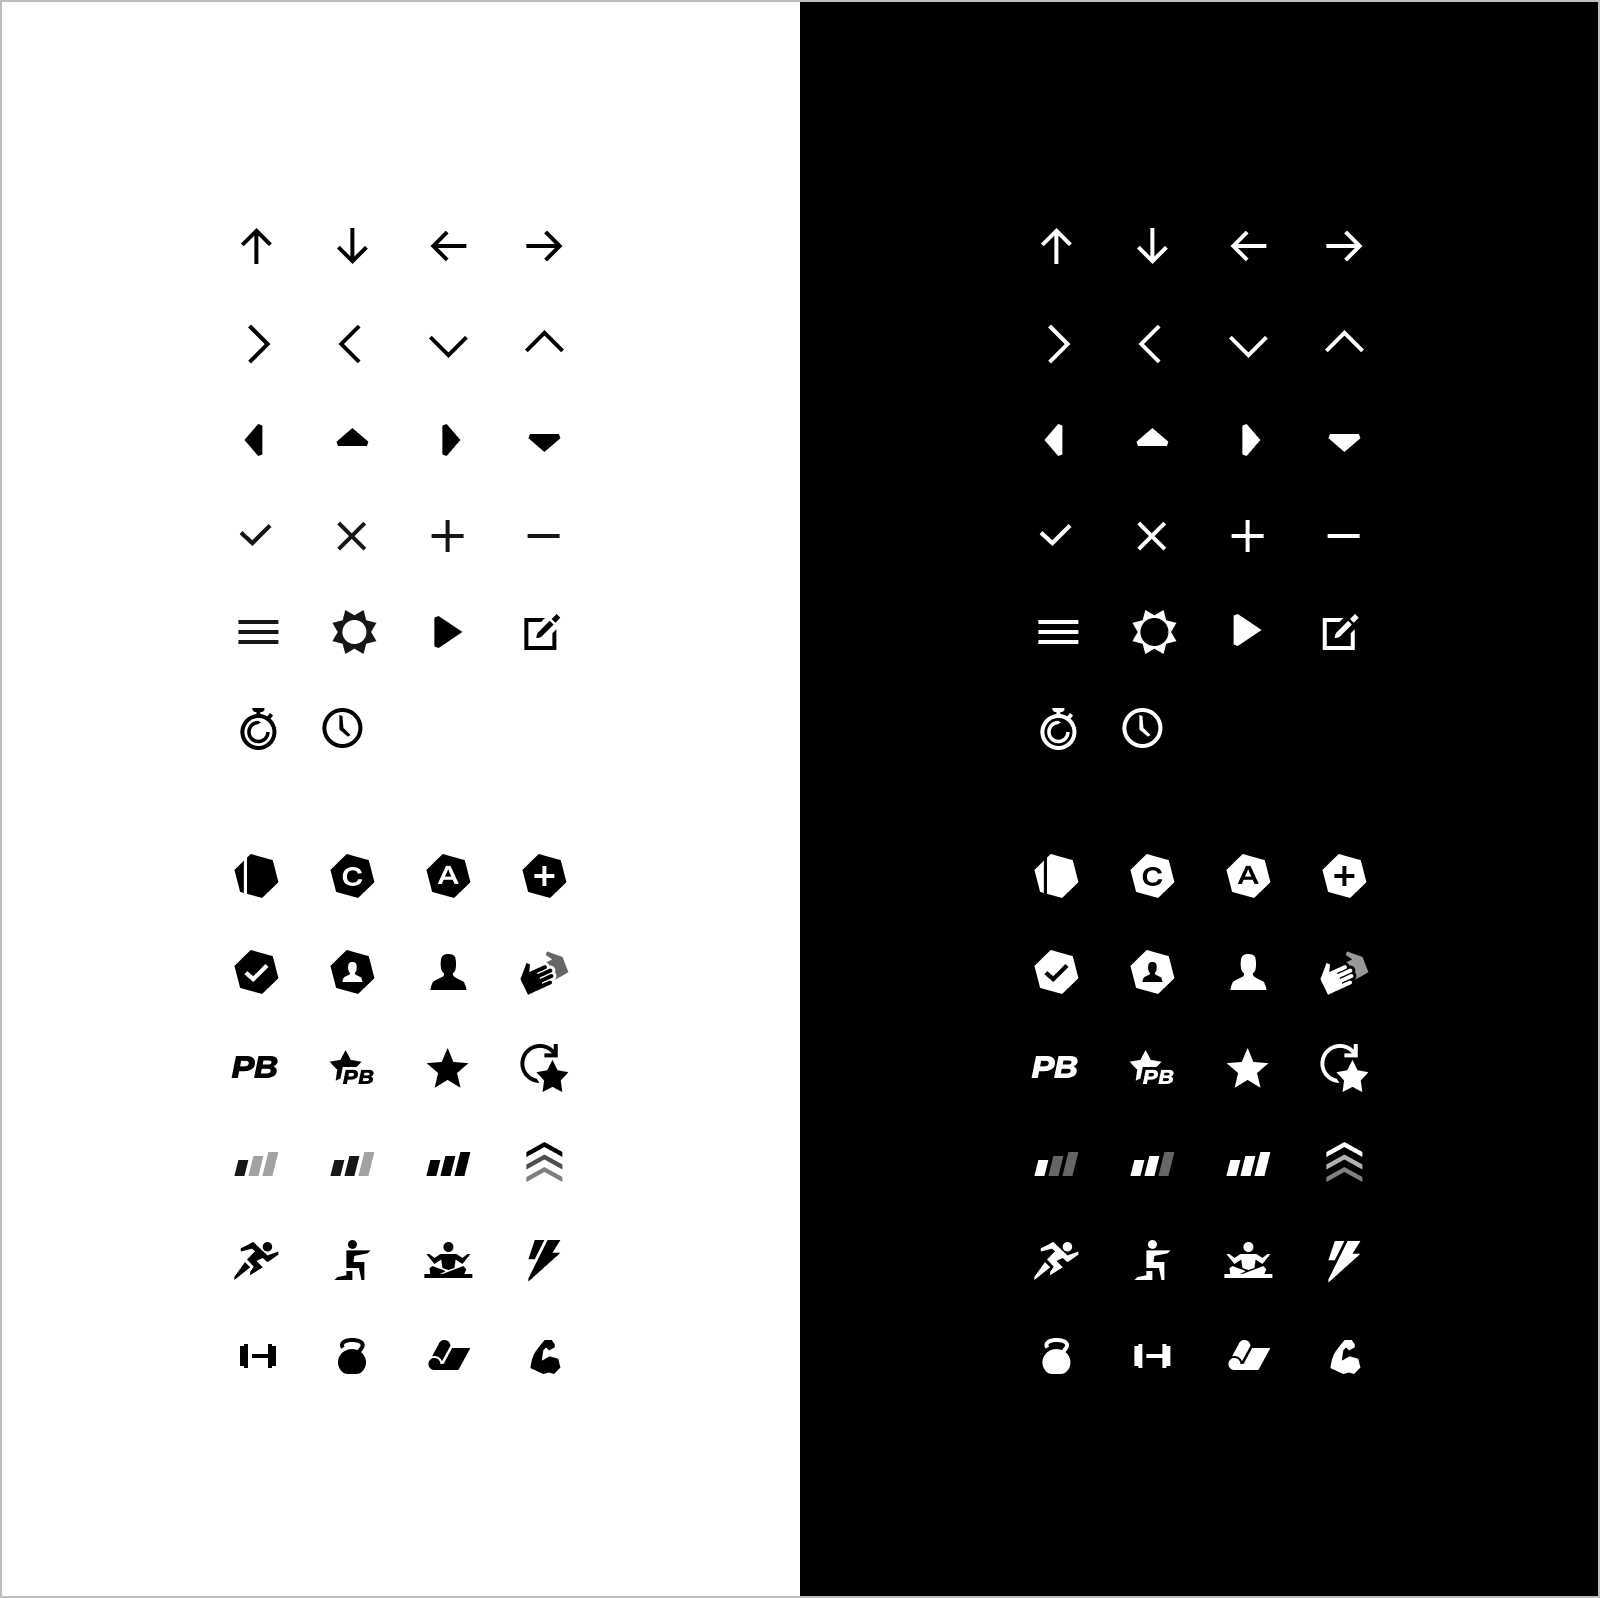 Layout of two sets of icons in a grid. One set is white on a black background, the other set is black on a white background.